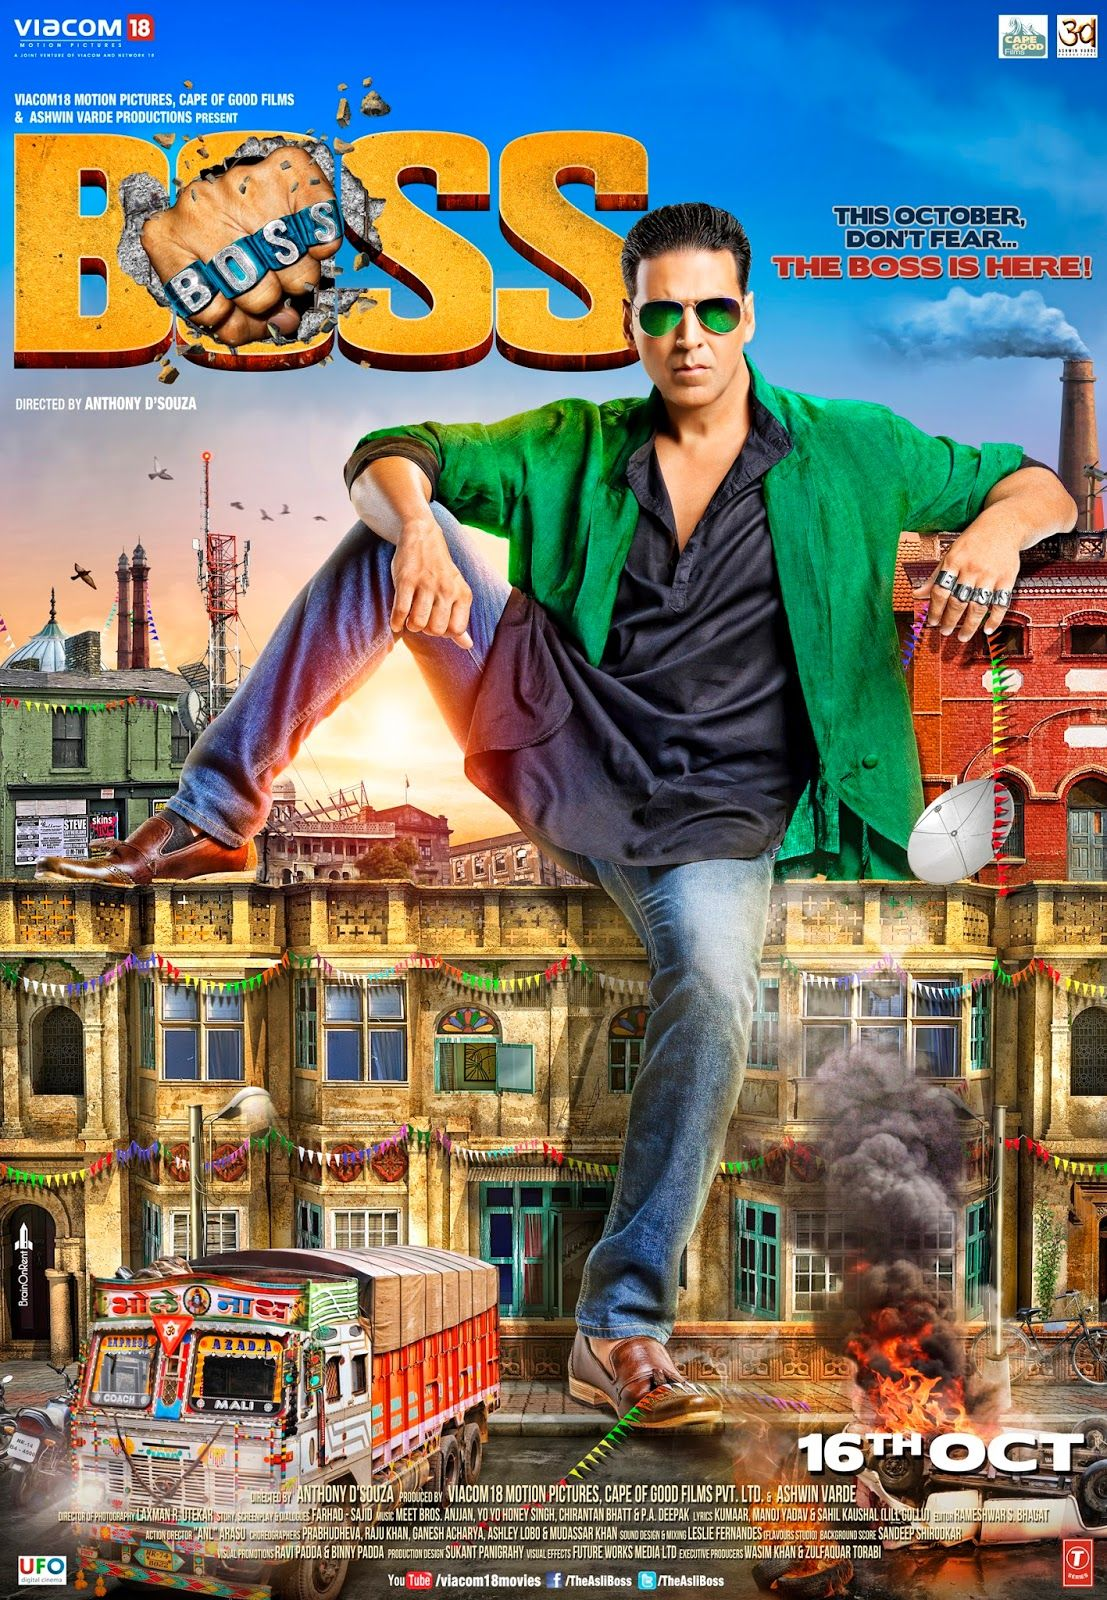 free download boss movie wallpapers full hd | free download